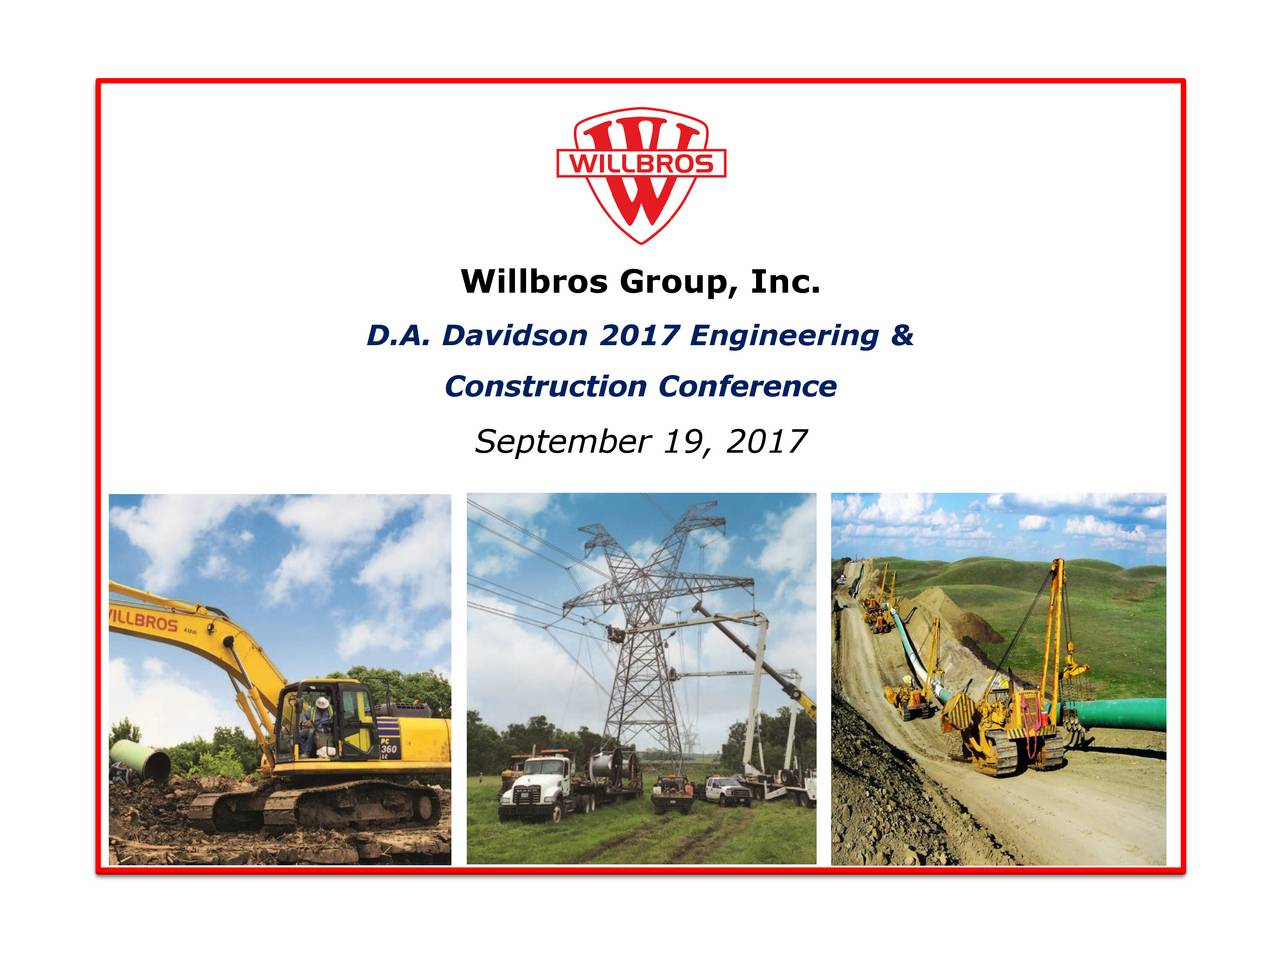 D.A. Davidson 2017 Engineering & Construction Conference September 19, 2017 Willbros Group, Inc. September 2015